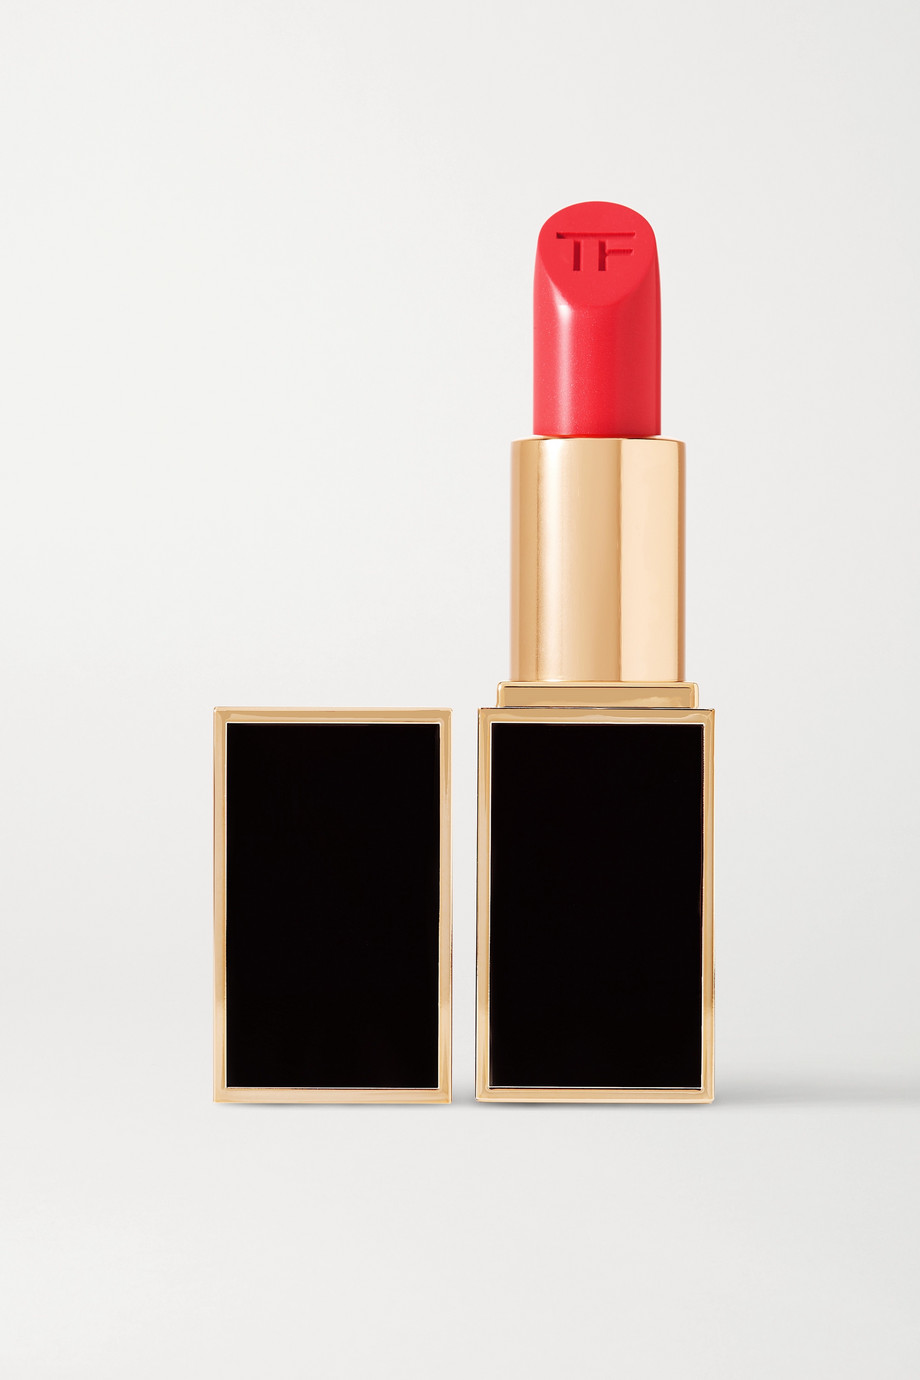 TOM FORD BEAUTY Rouge à lèvres Lips & Boys, Federico 98